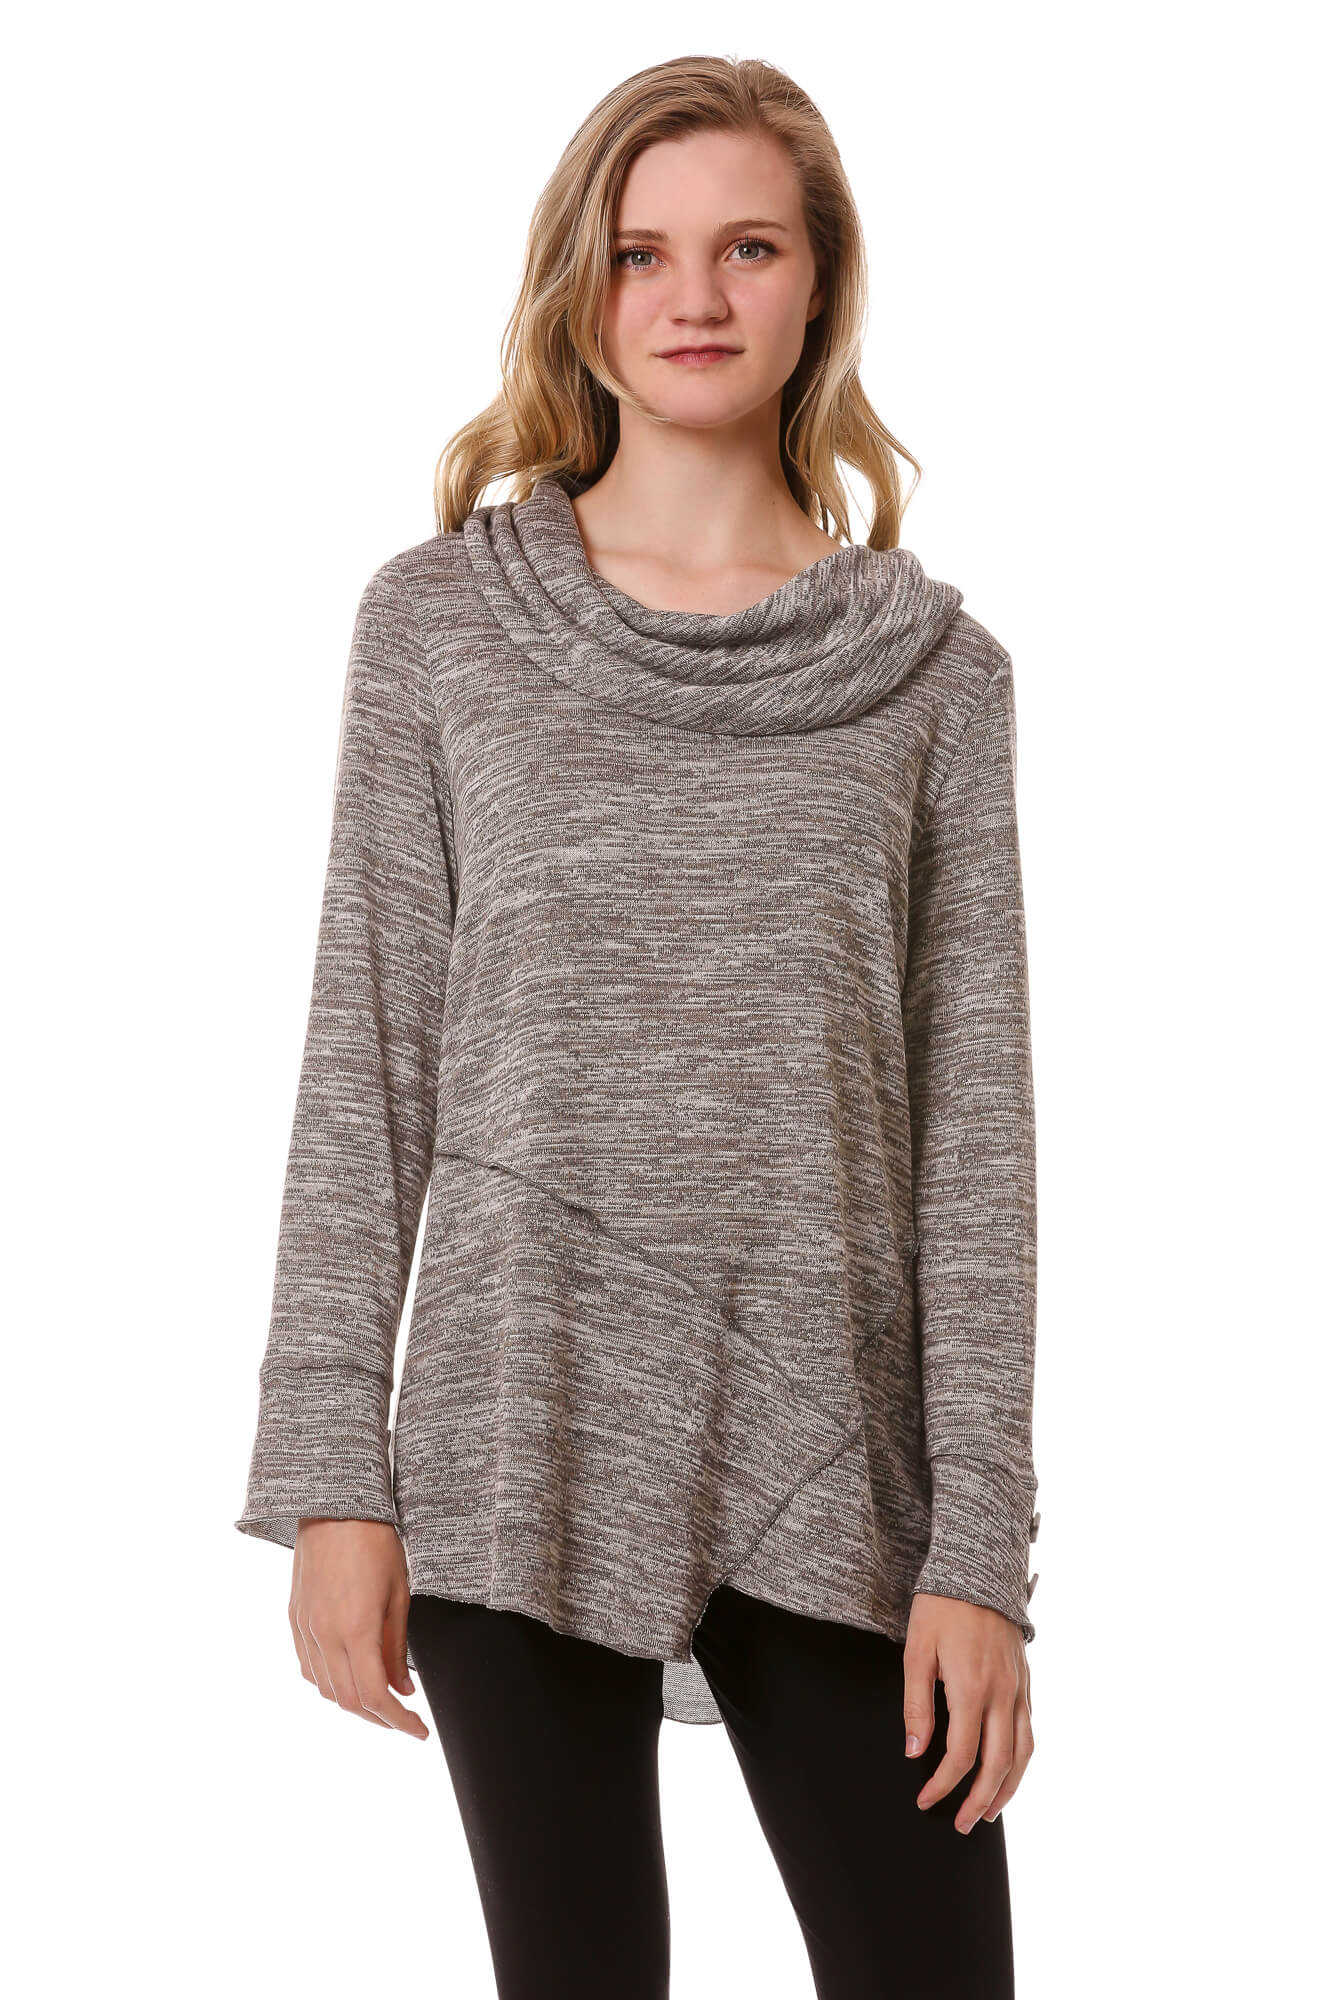 Asymmetrical Cowl Top w/ Button Sleeves-Heather